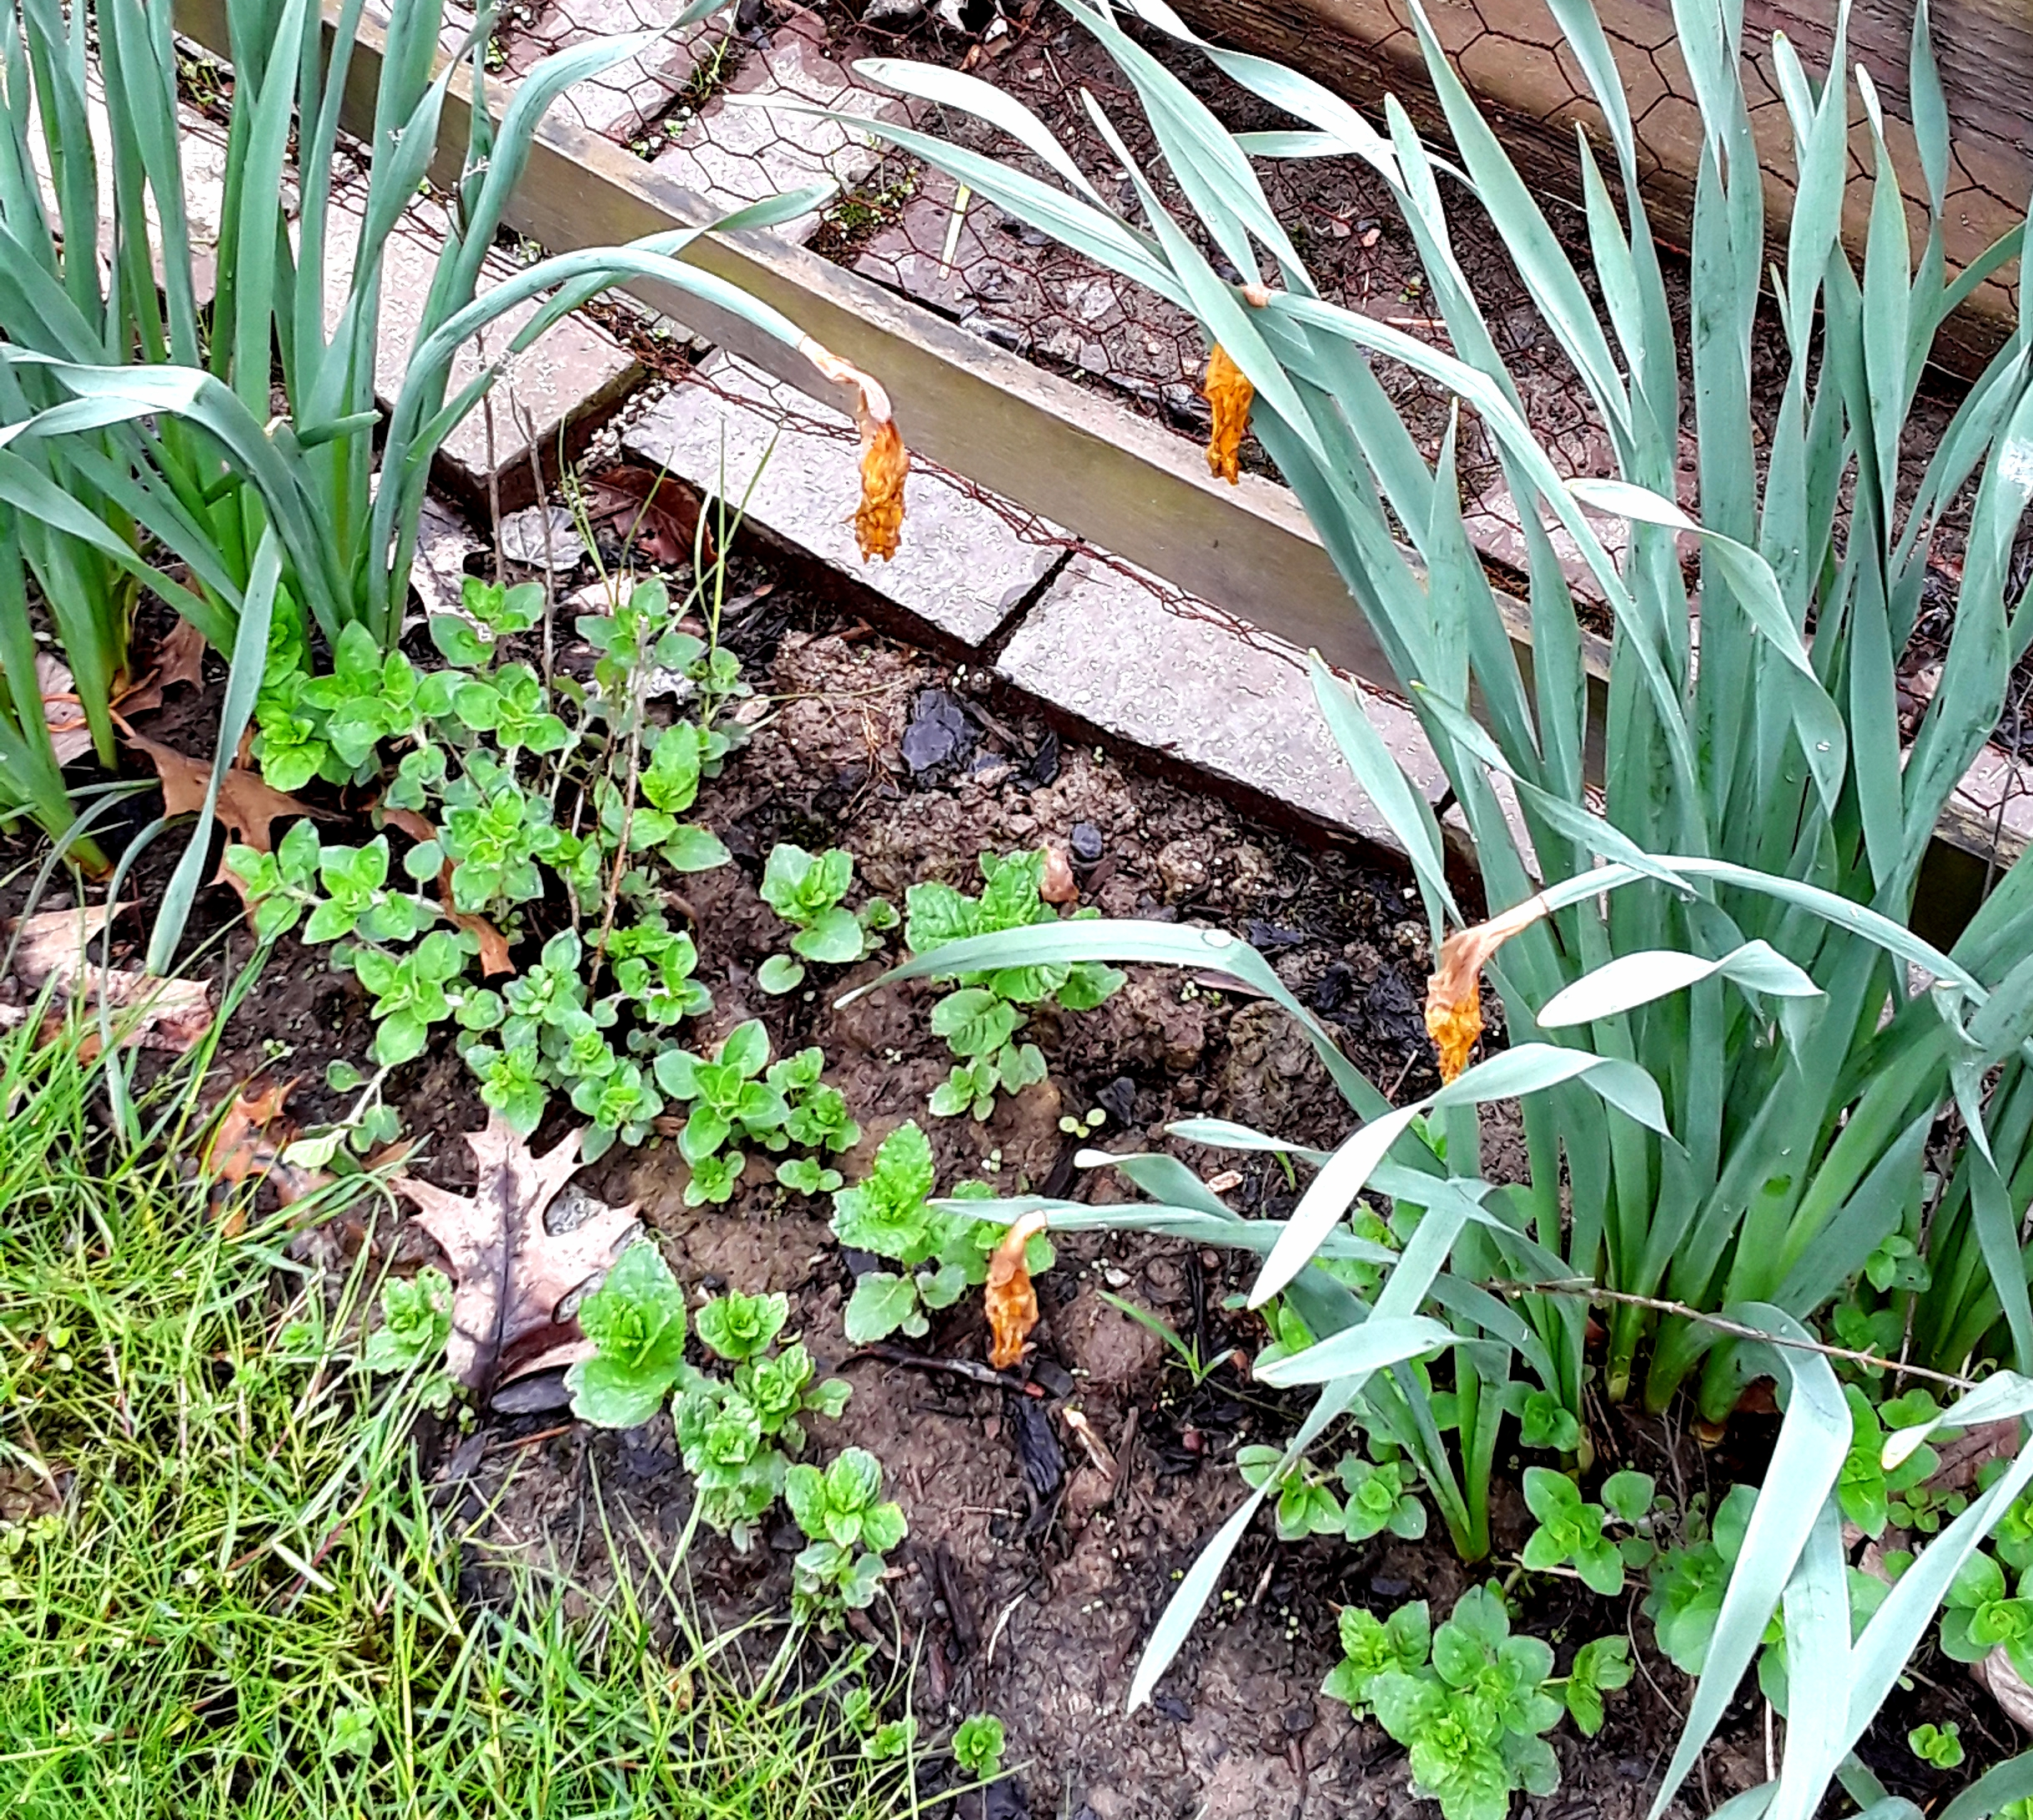 Oregano and mint growing outside the fence